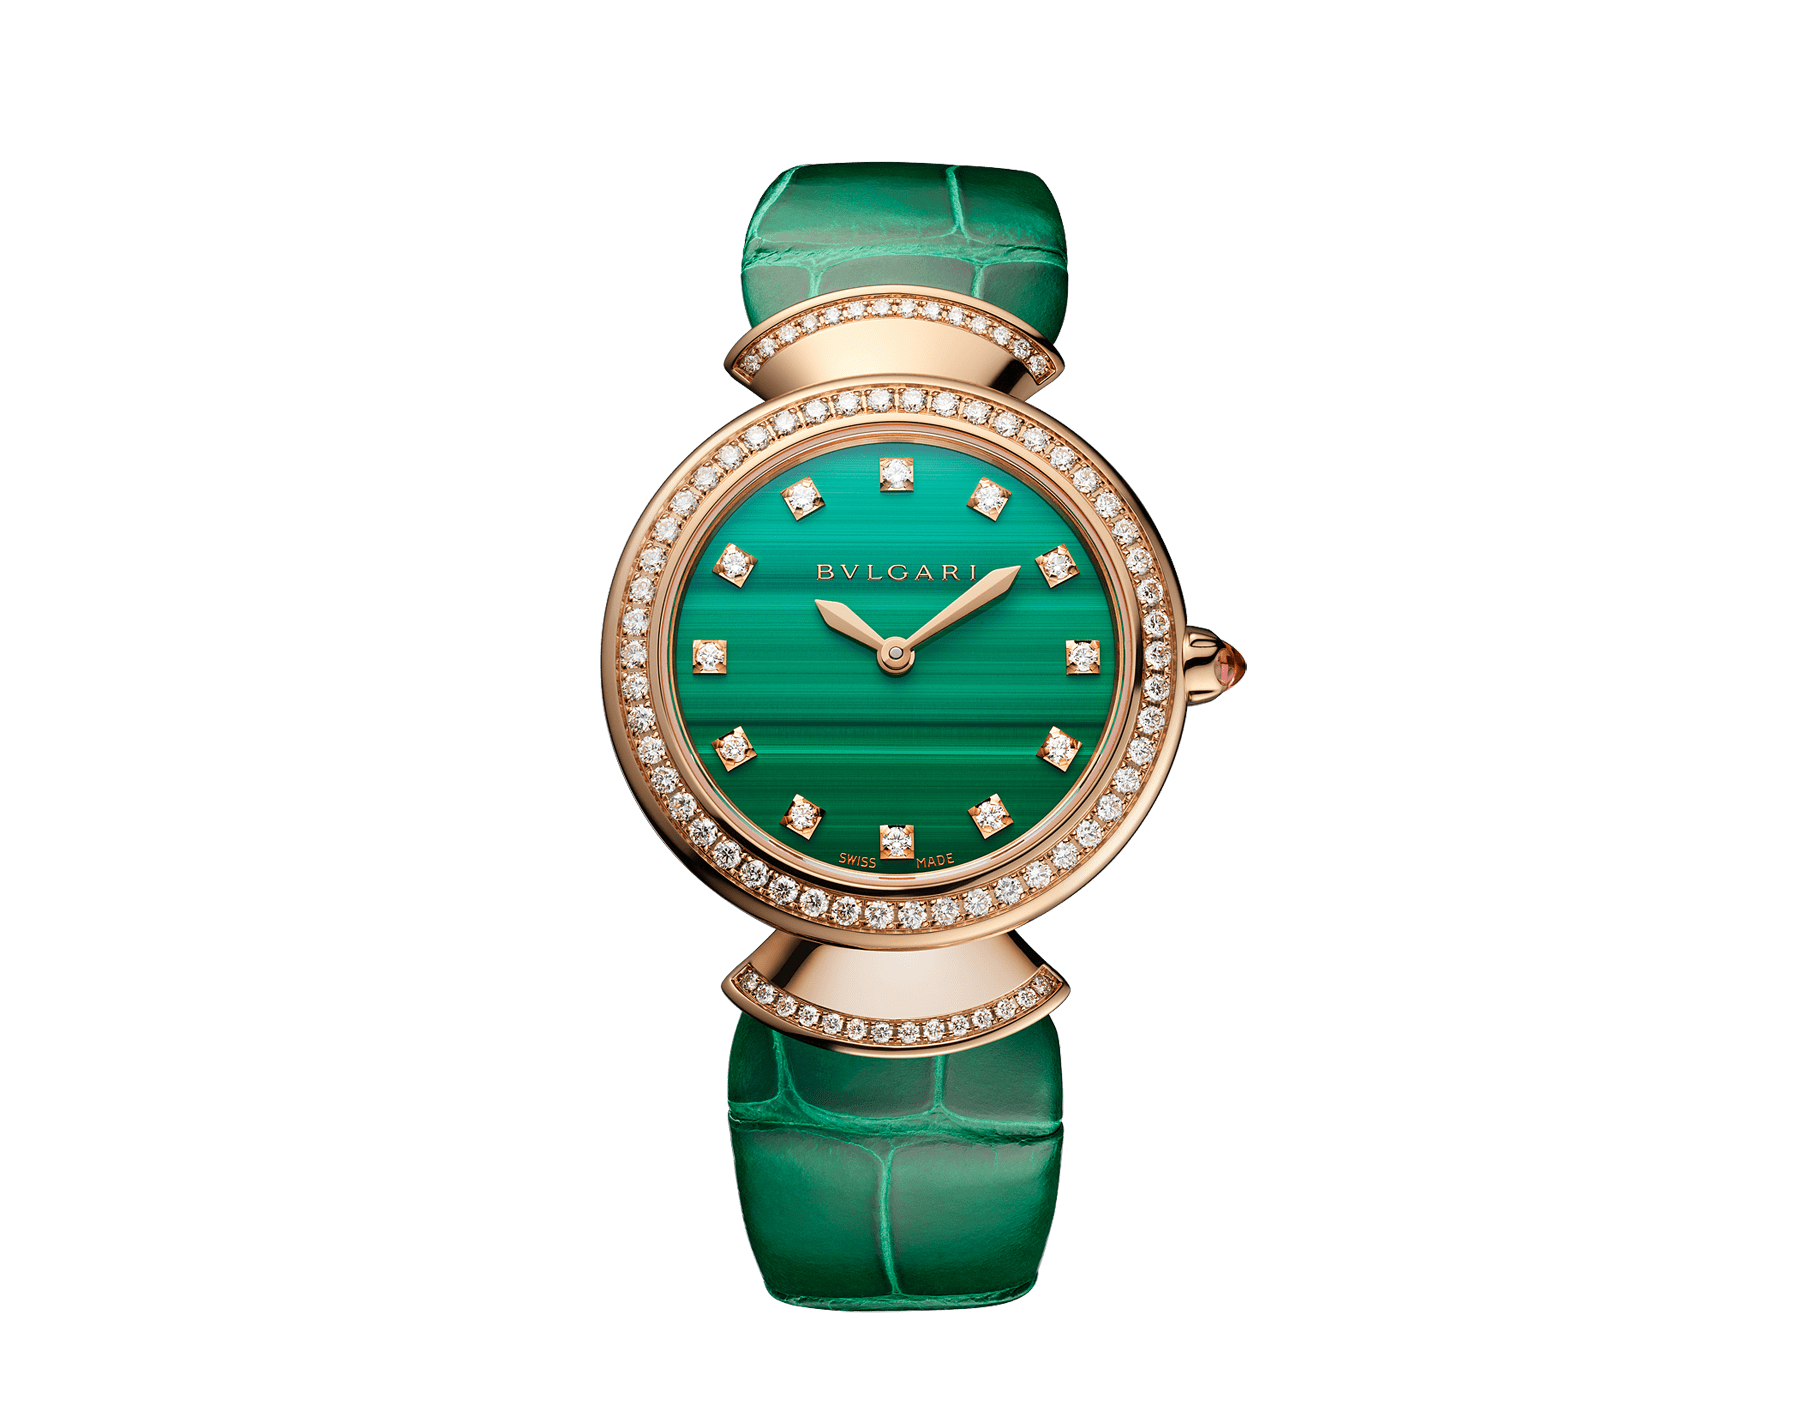 DIVAS' DREAM watch with 18 kt rose gold case, 18 kt rose gold bezel and fan-shaped links both set with brilliant-cut diamonds, malachite dial, diamond indexes and green alligator strap 103119 image 1